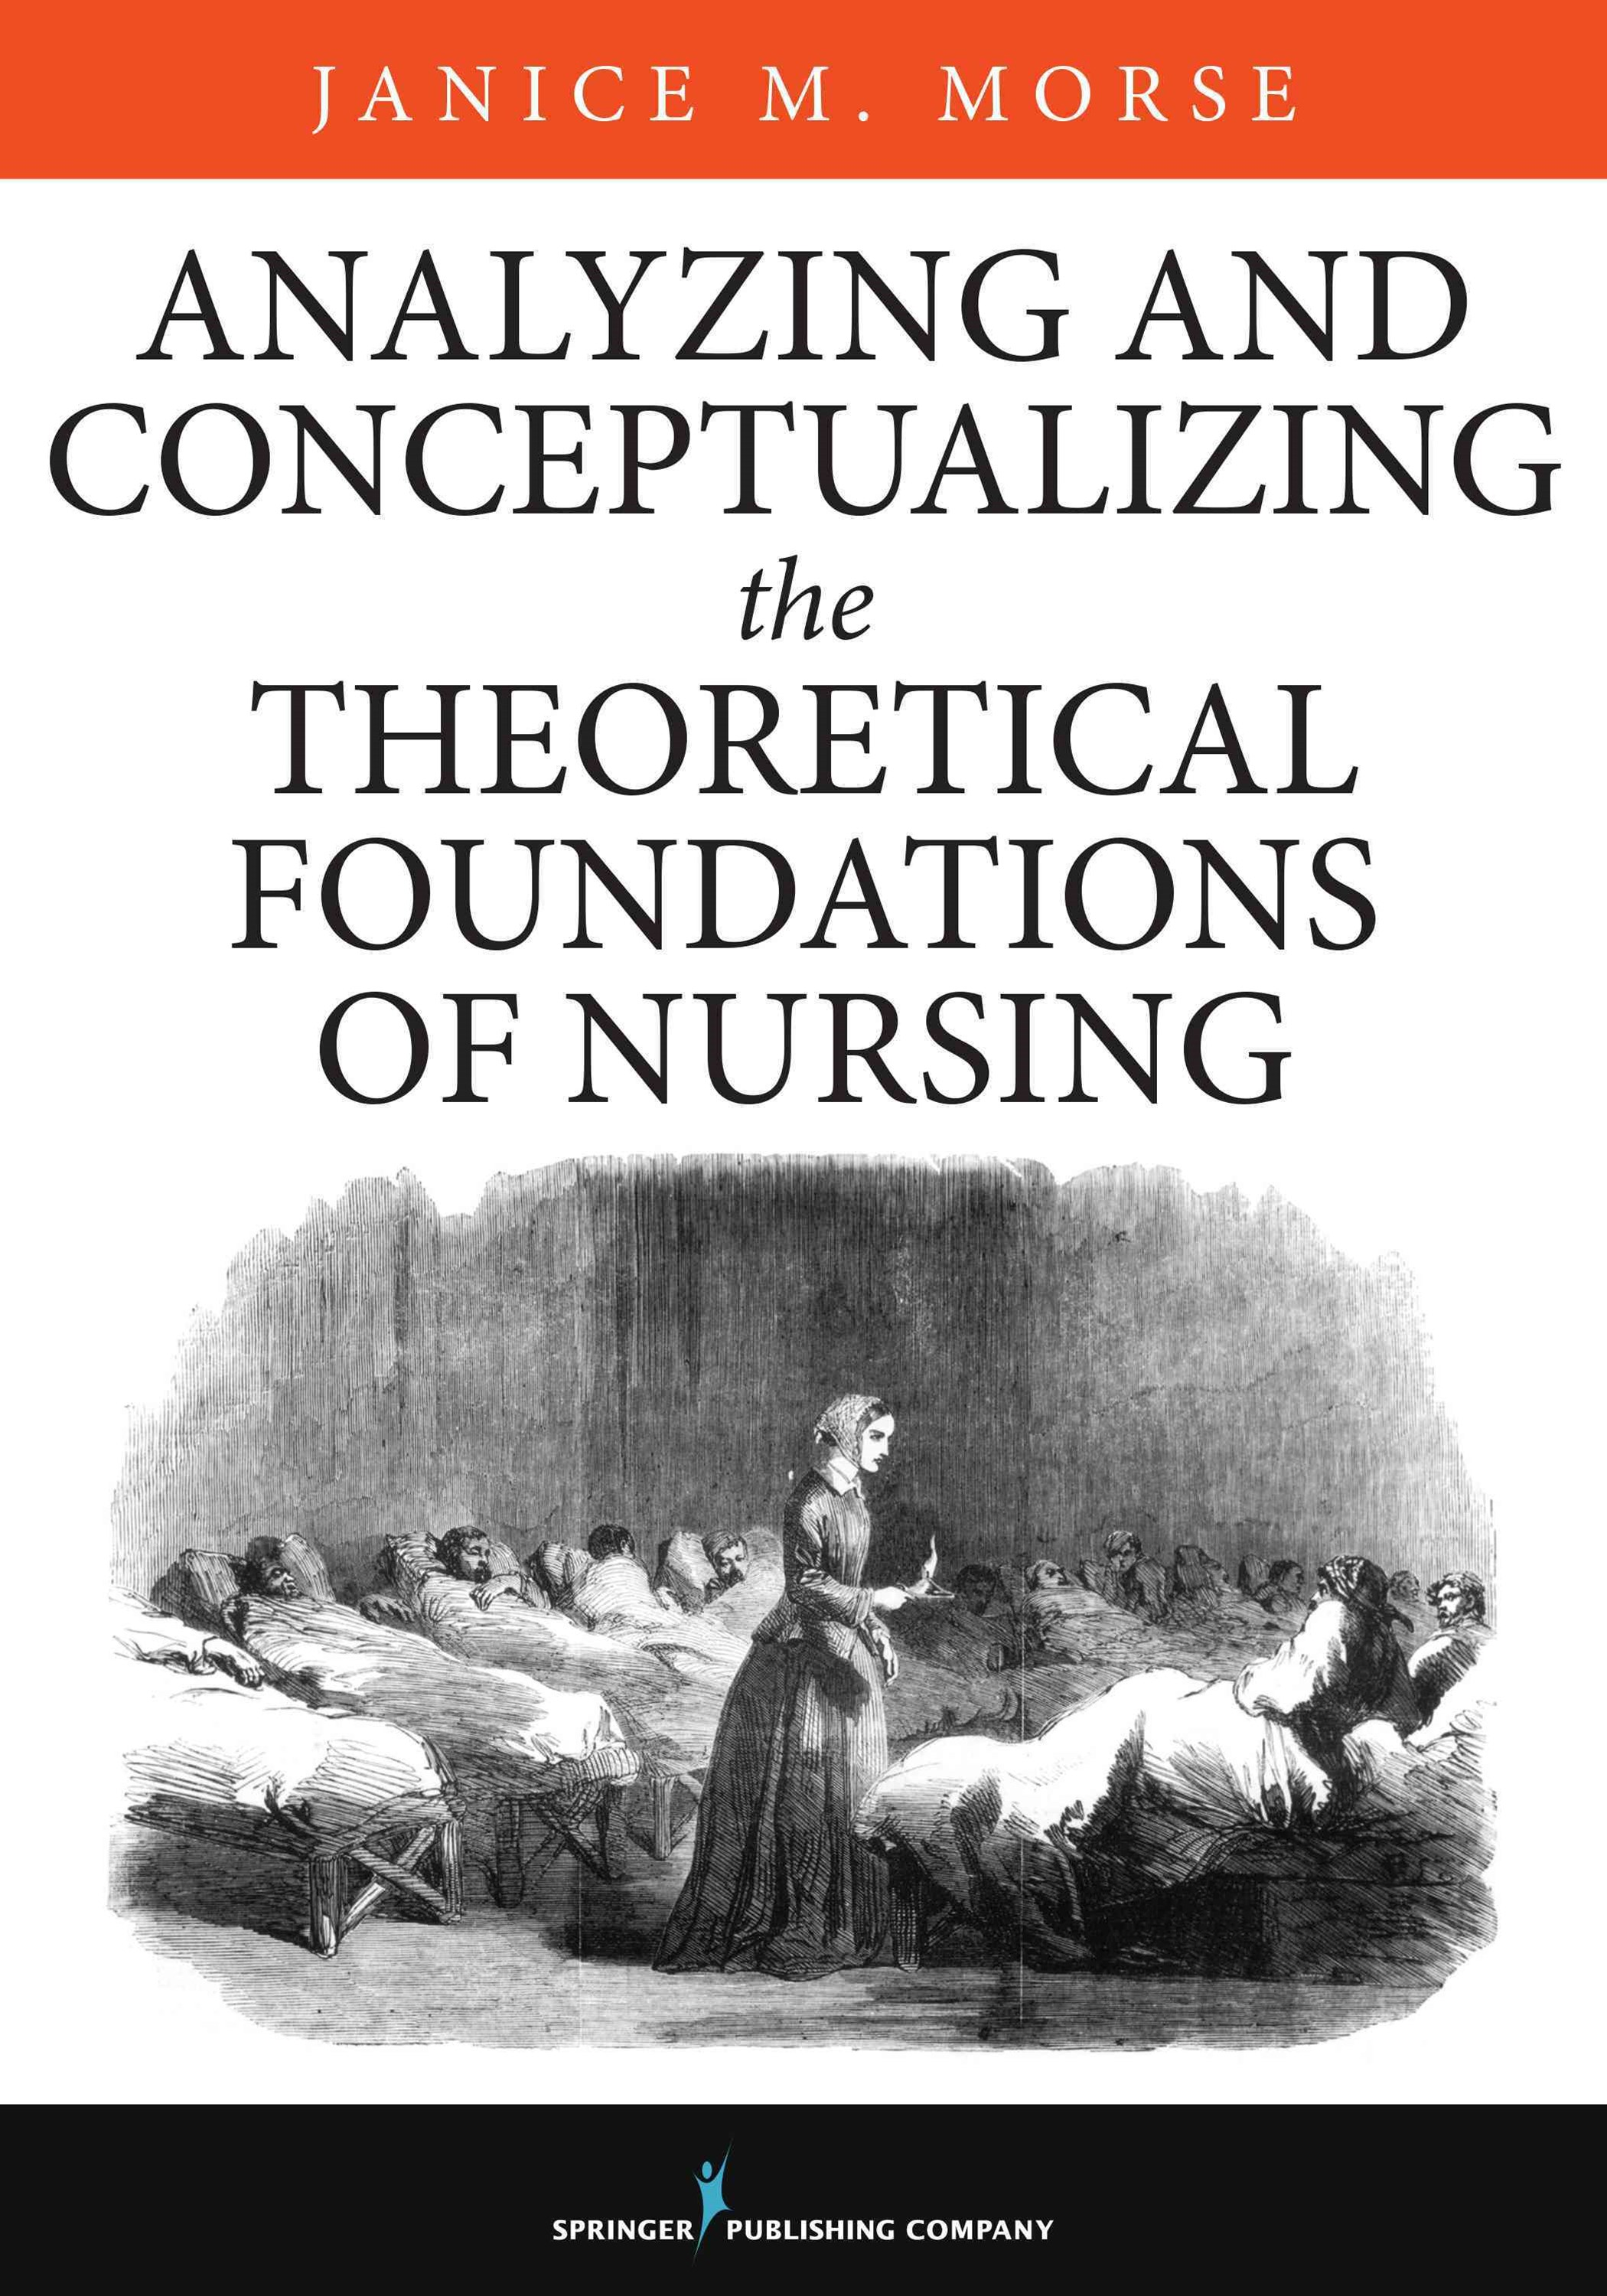 Analyzing and Constructing the Conceptual and Theoretical Foundations of Nursing